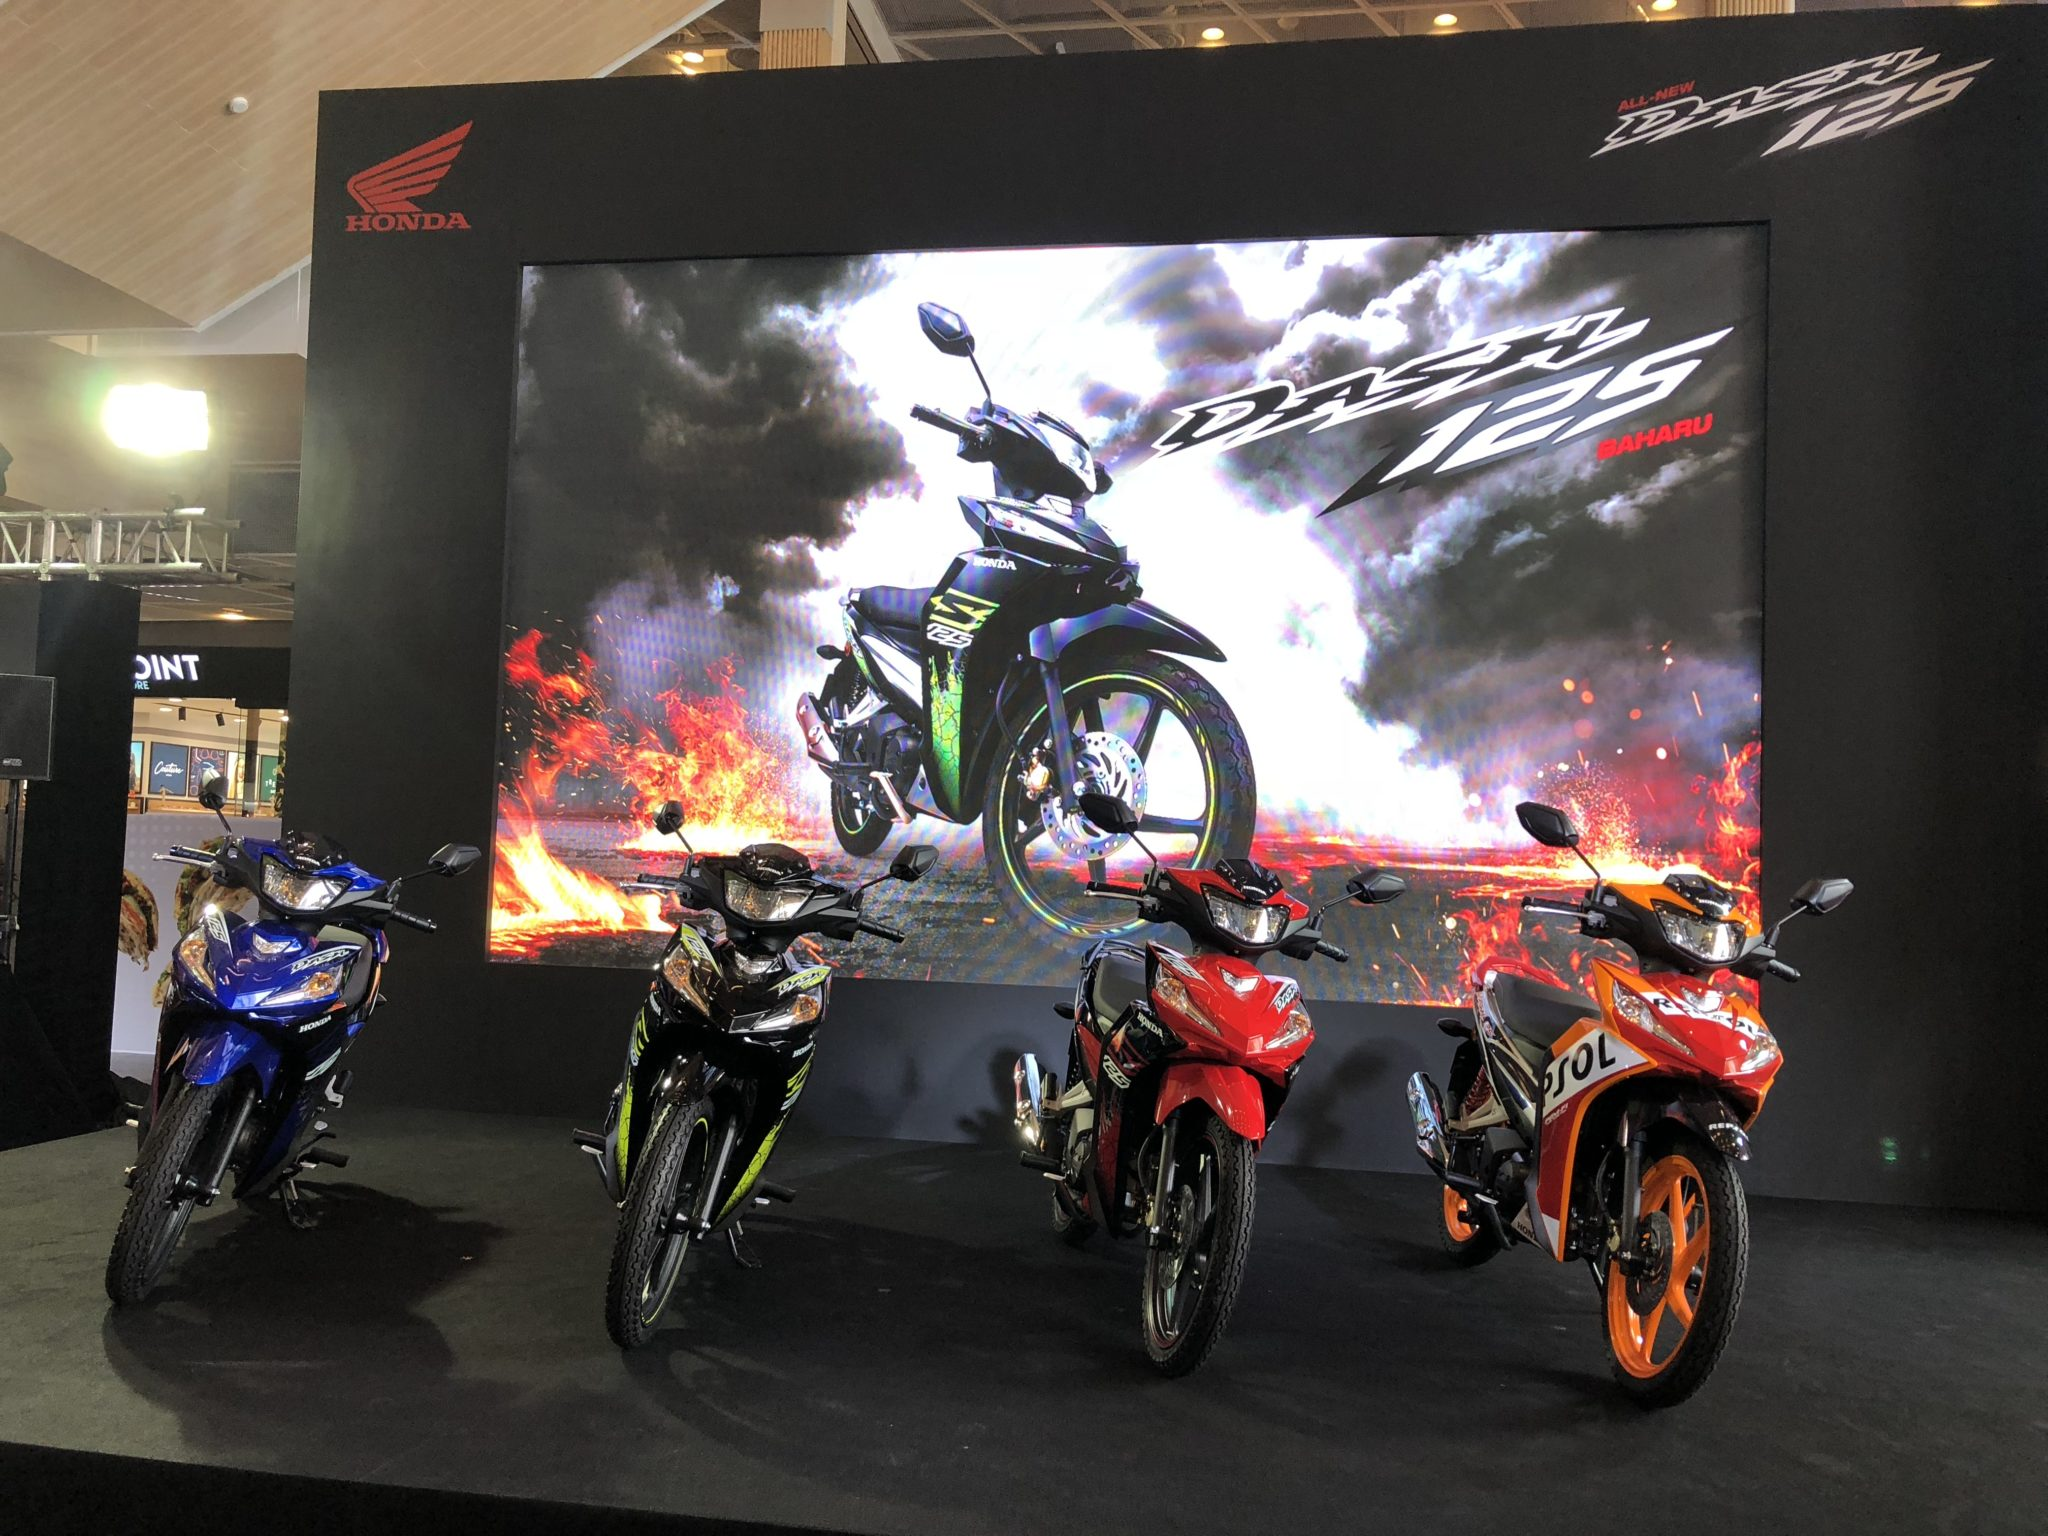 New Dash 125 introduced in Malaysia